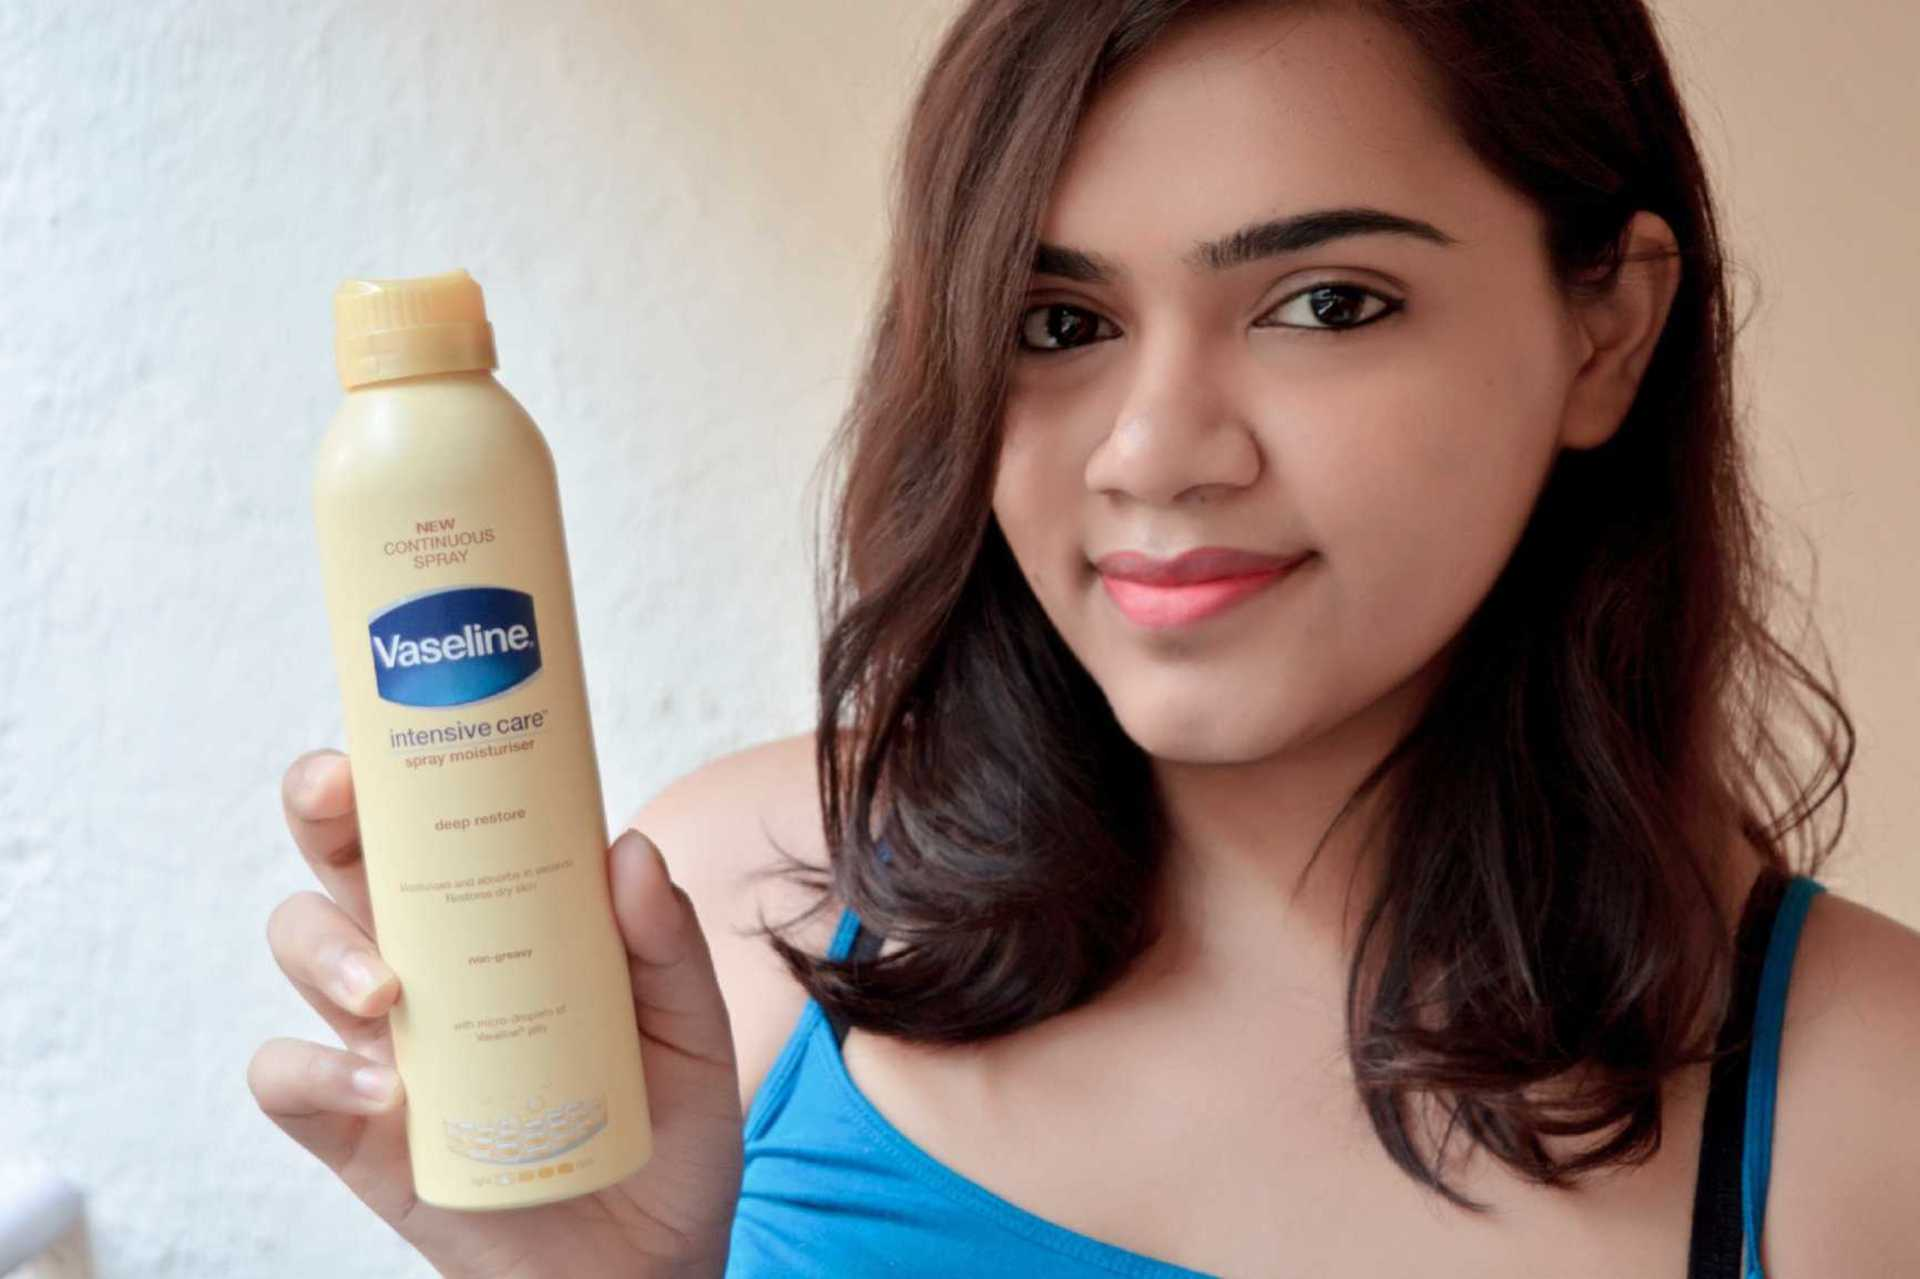 Vaseline Intensive Care Spray Moisturizer Review image